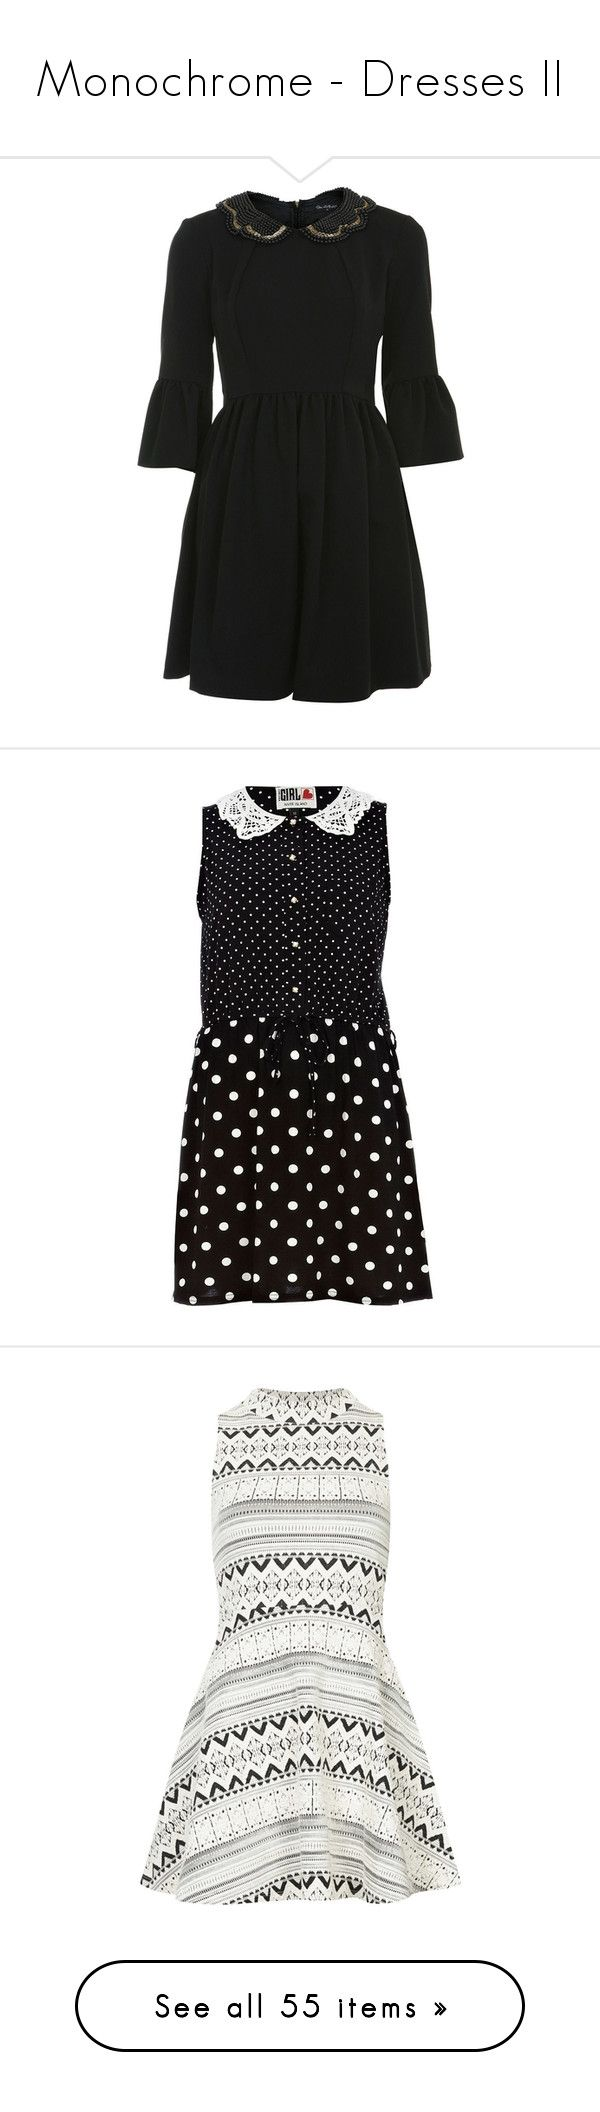 """""""Monochrome - Dresses II"""" by cat-on-wheels ❤ liked on Polyvore featuring dresses, black, miss selfridge, collar, miss selfridge dresses, collared dresses, embellished collar dress, river island, vintage looking dresses and button front sleeveless dress"""